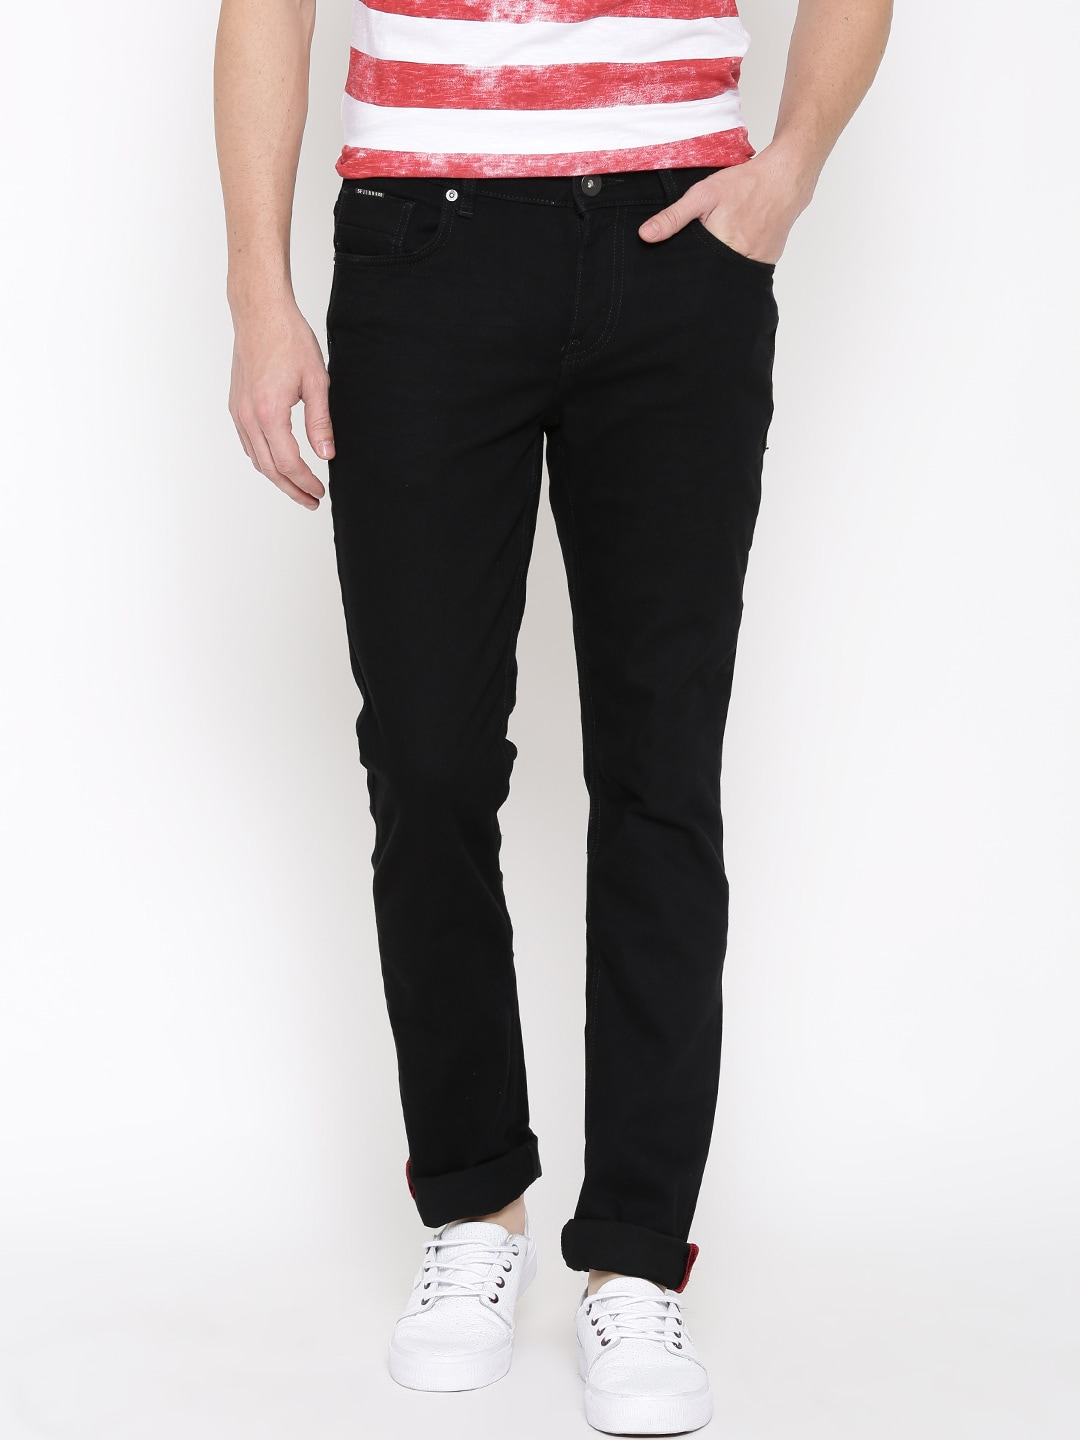 SF JEANS by Pantaloons Men Black Jagger Fit Mid-Rise Clean Look Jeans